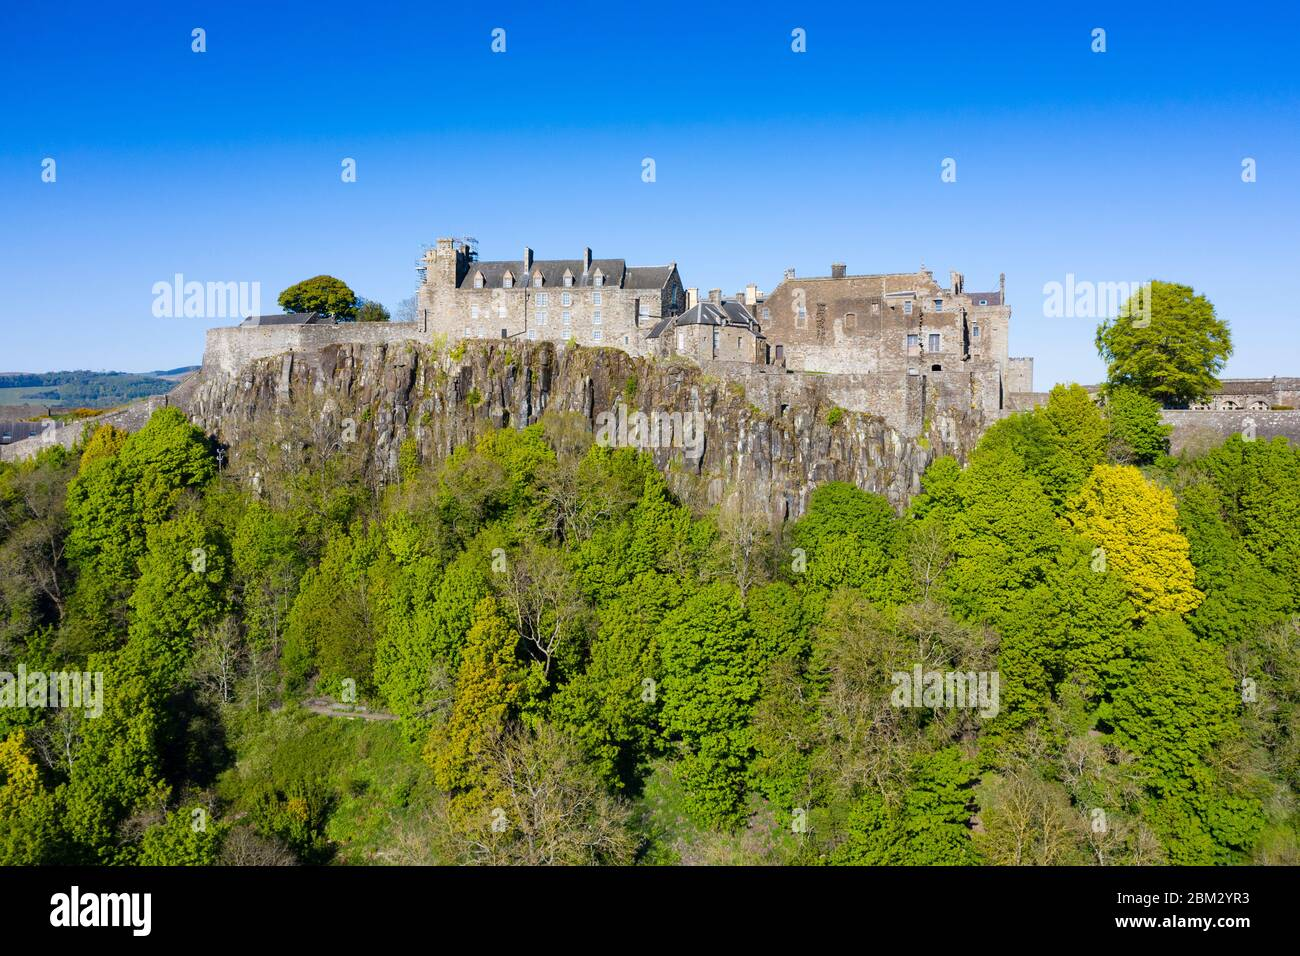 Aerial view of Stirling Castle, closed during Covid-19 lockdown in Stirling, Scotland, UK Stock Photo